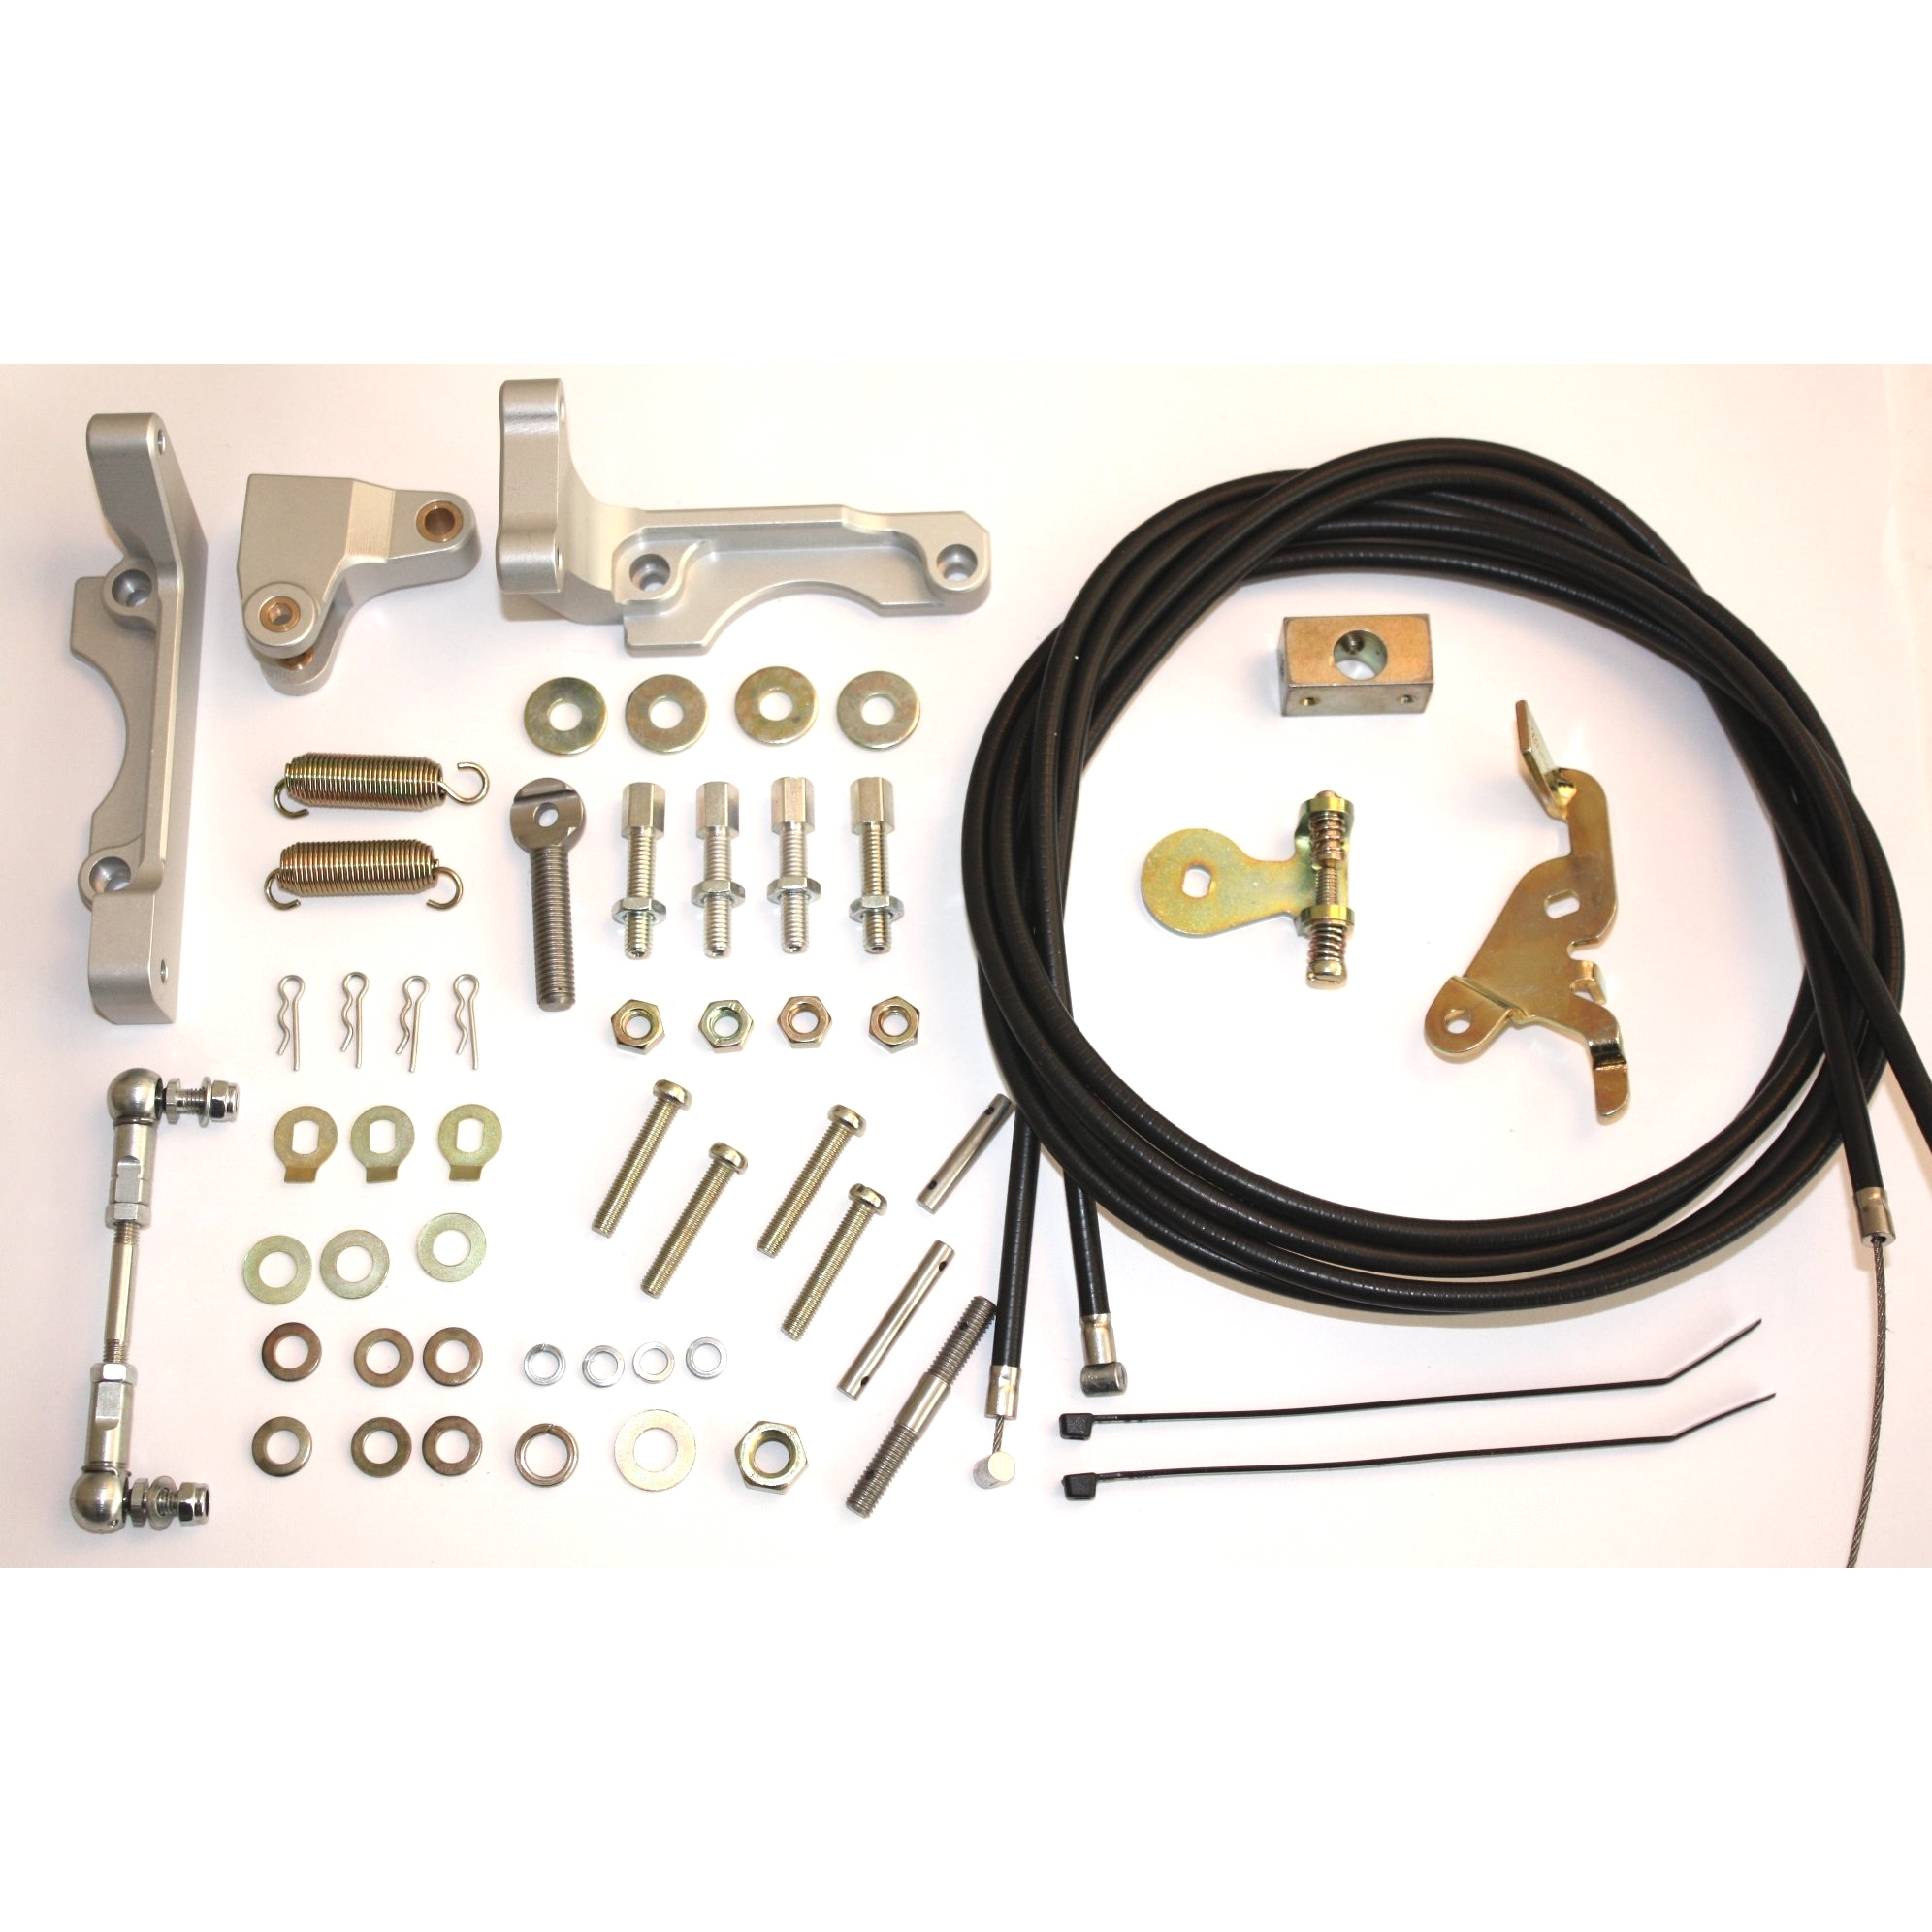 WEBER 38-55 DCOE / DCO / SP DOUBLE CABLE CARBURATEUR / CARB THROTTLE LINKAGE KIT